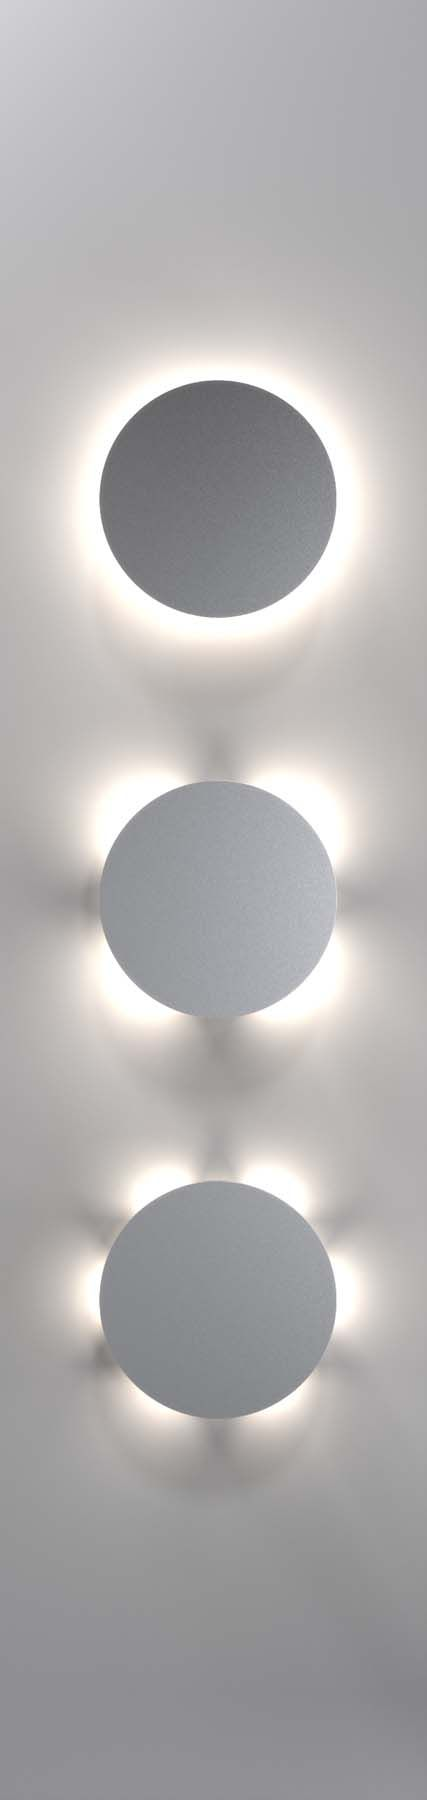 Uno Disc | Wall lamp from Nordlux | Designed by Bønnelycke mdd | Nordic and Scandinavian style | Light | Decoration | Designed in Denmark